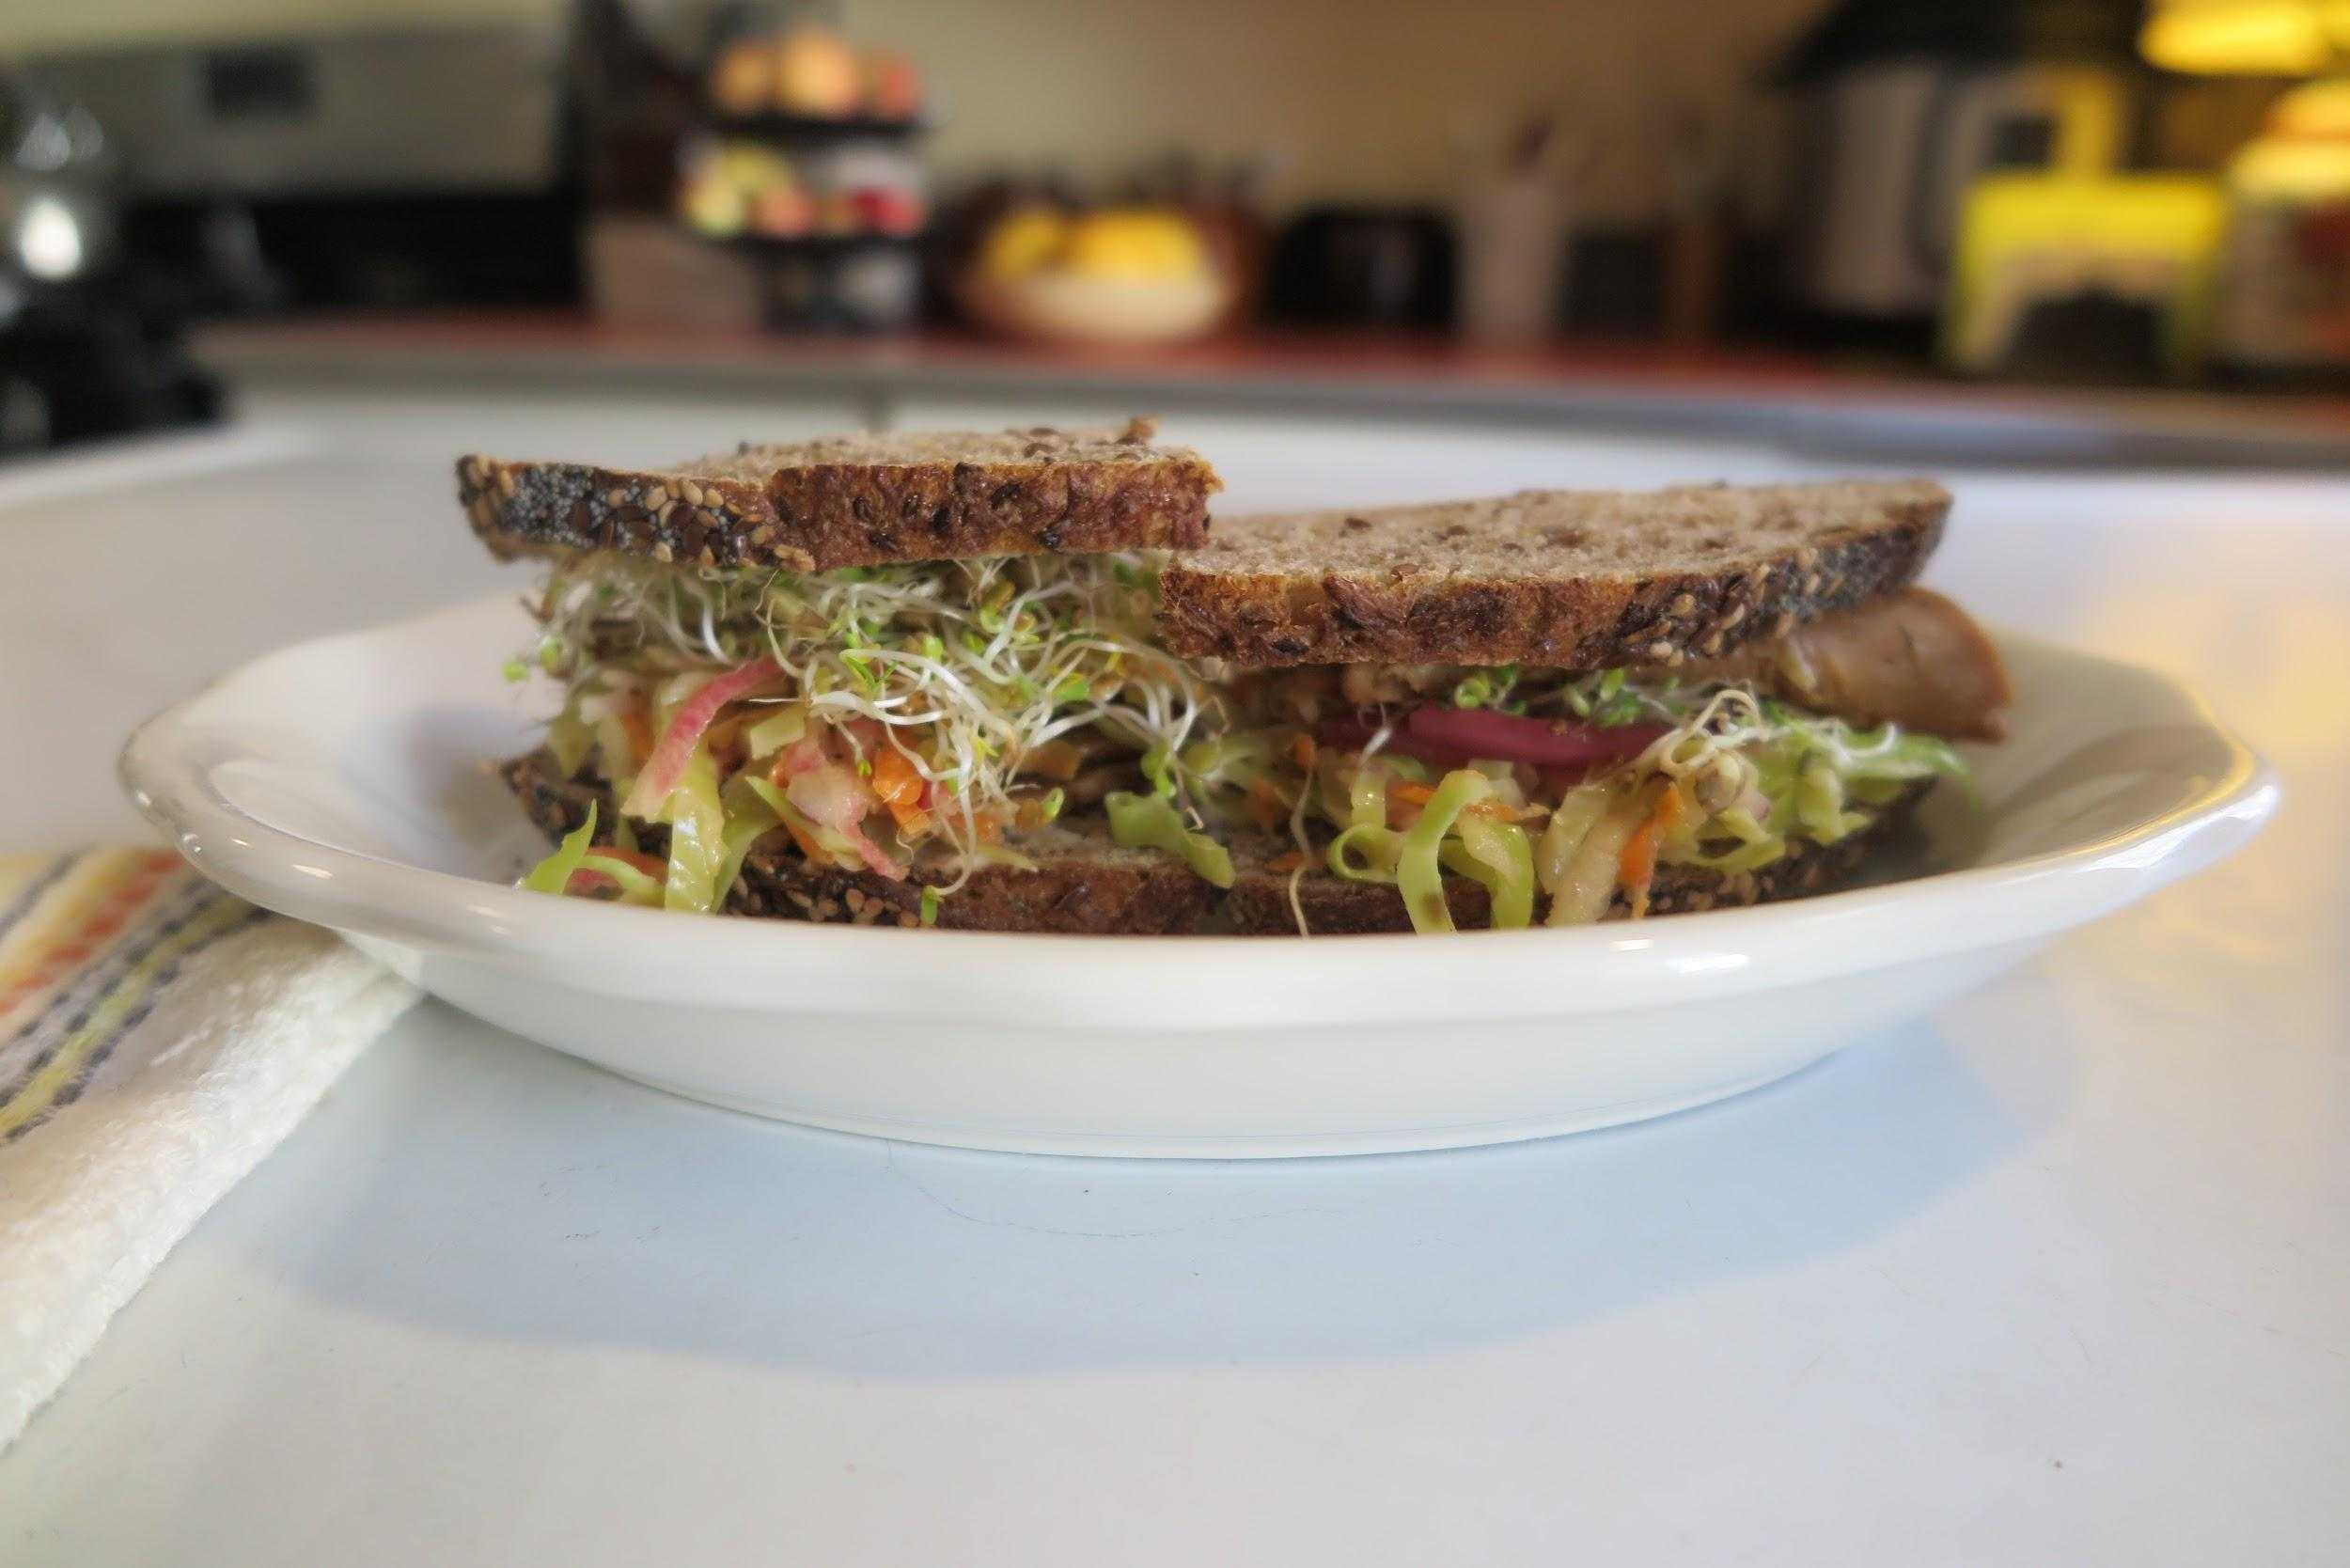 Profile shot of a sandwich with the coleslaw on a white plate.